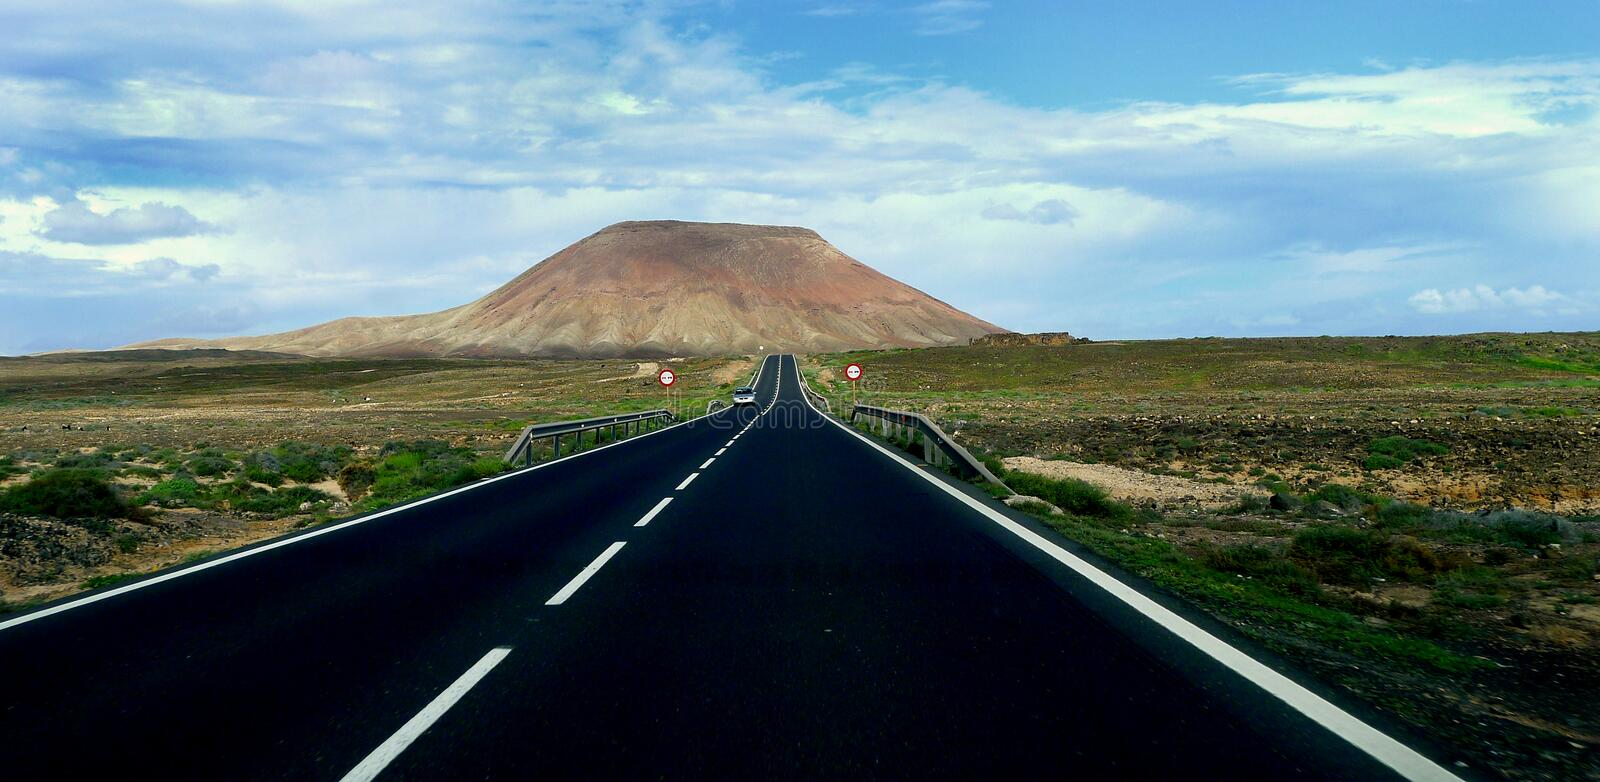 The road to the volcano. Isle of Fuerteventura Spain. One of the many extinct volcanoes that can be encountered on the drifting road and offshore on the island